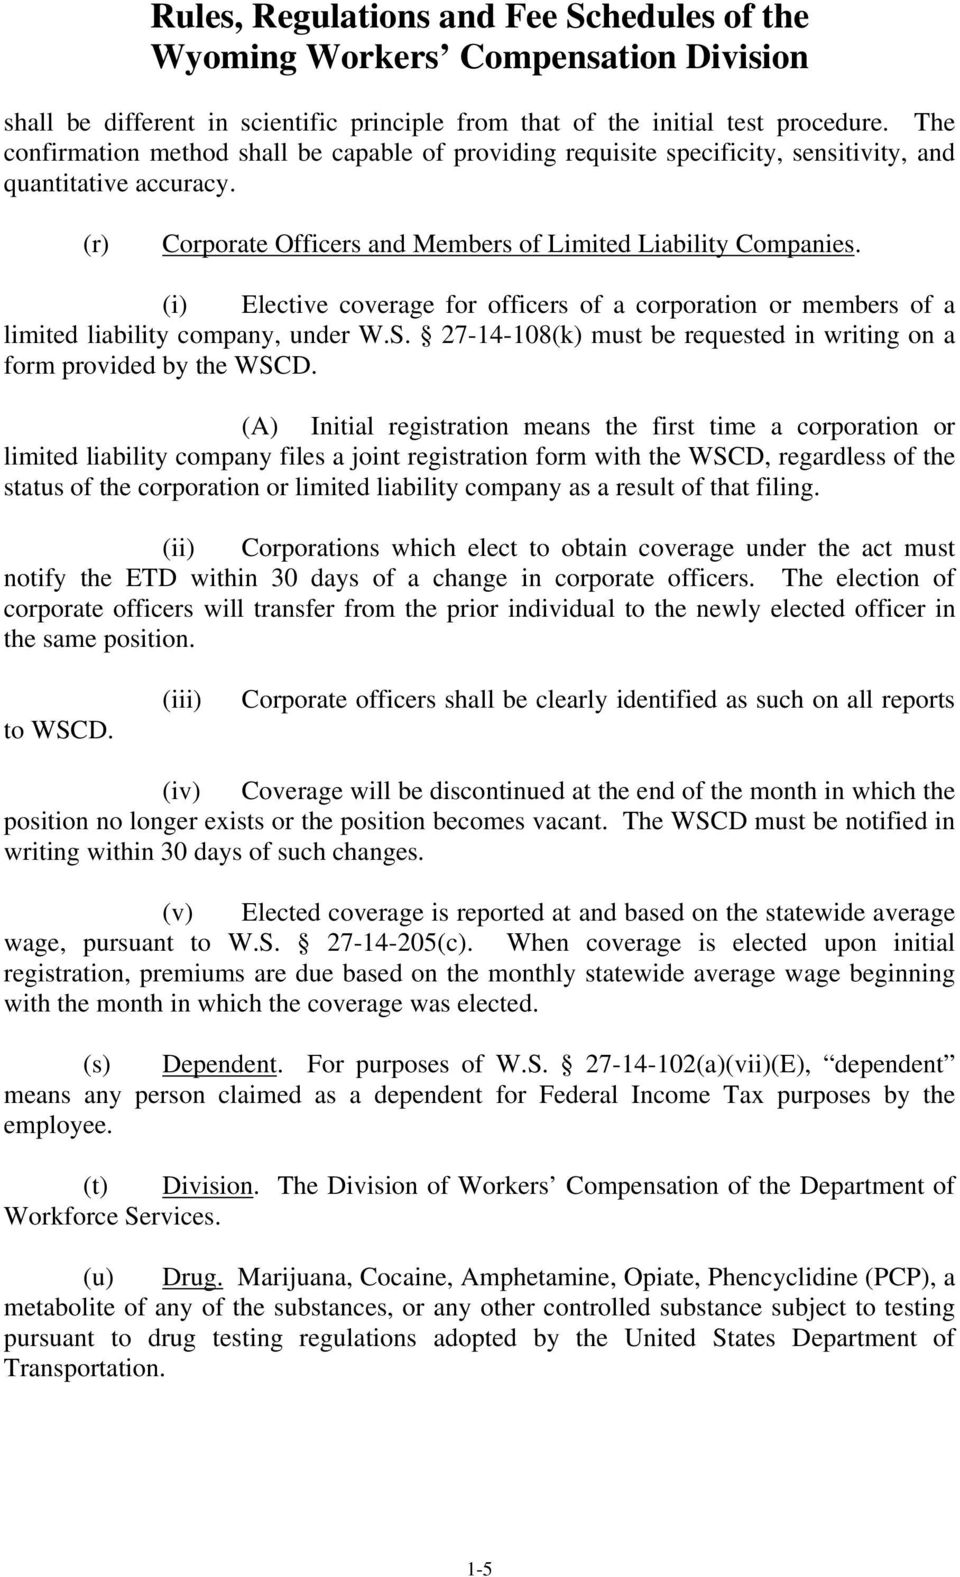 27-14-108(k) must be requested in writing on a form provided by the WSCD.